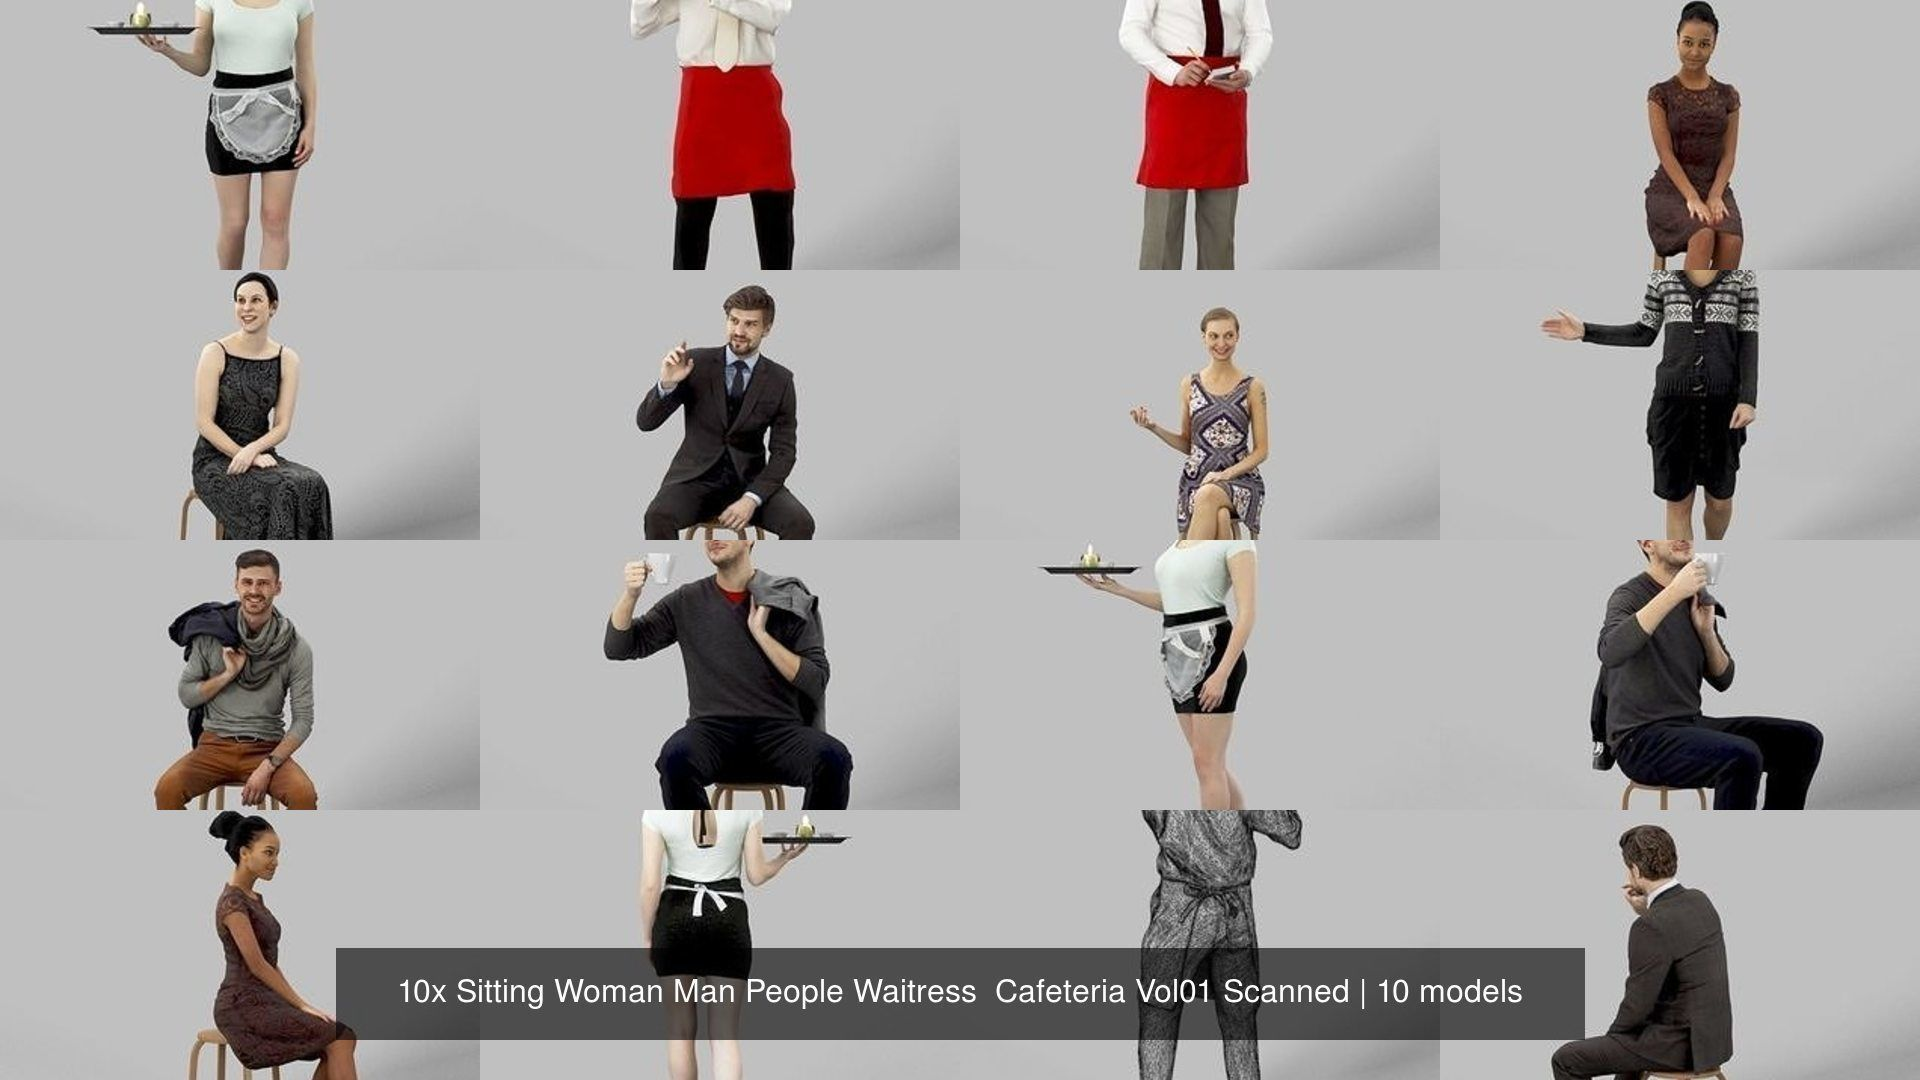 10x Sitting Woman Man People Waitress  Cafeteria Vol01 Scanned